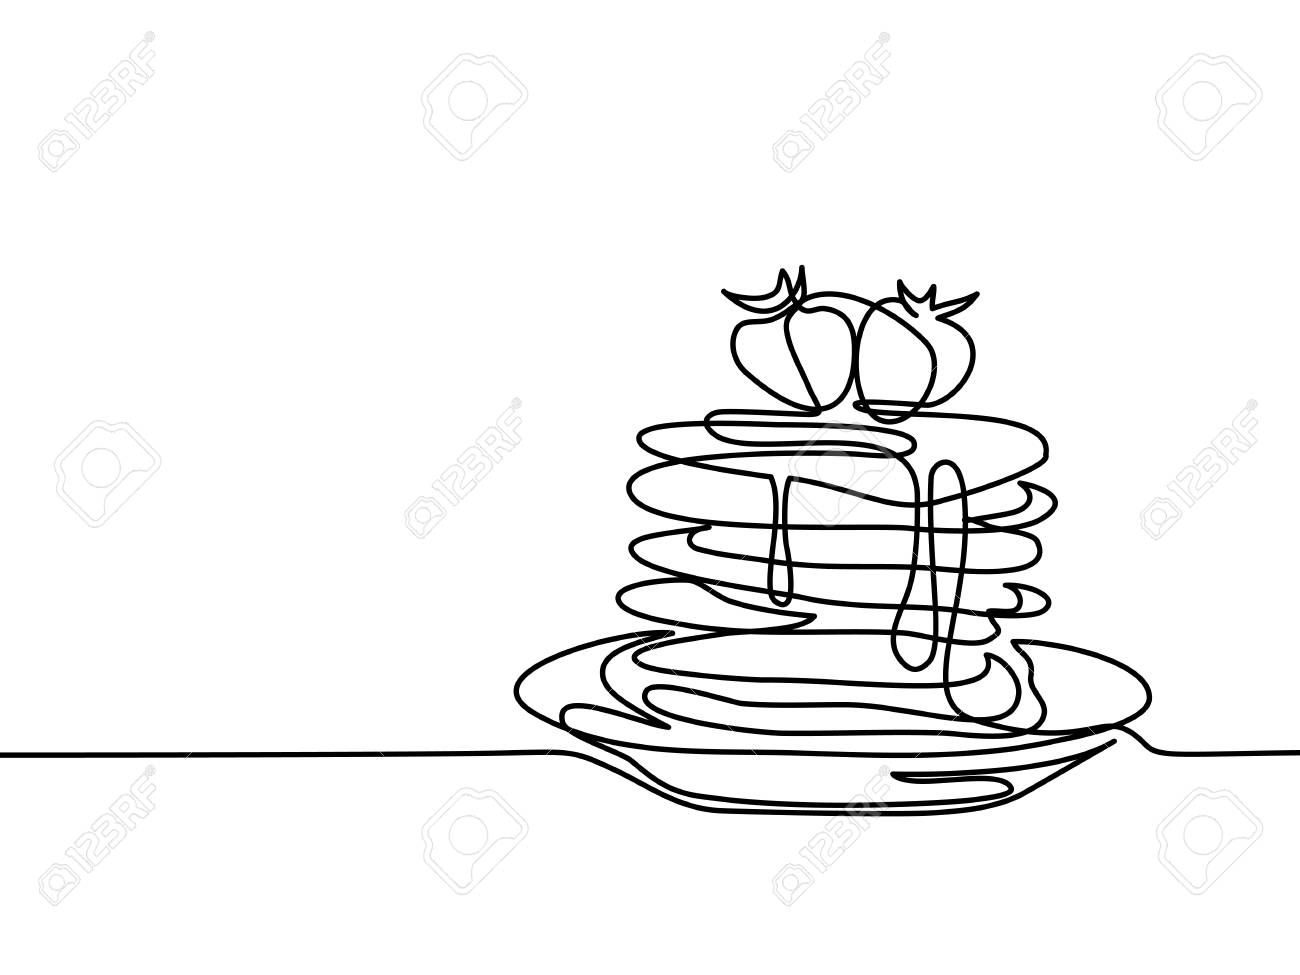 Continuous Line Drawing Pancakes With Strawberry Jam On Plate Vector Illustration Black Line On White Backgroun Continuous Line Drawing Line Drawing Drawings